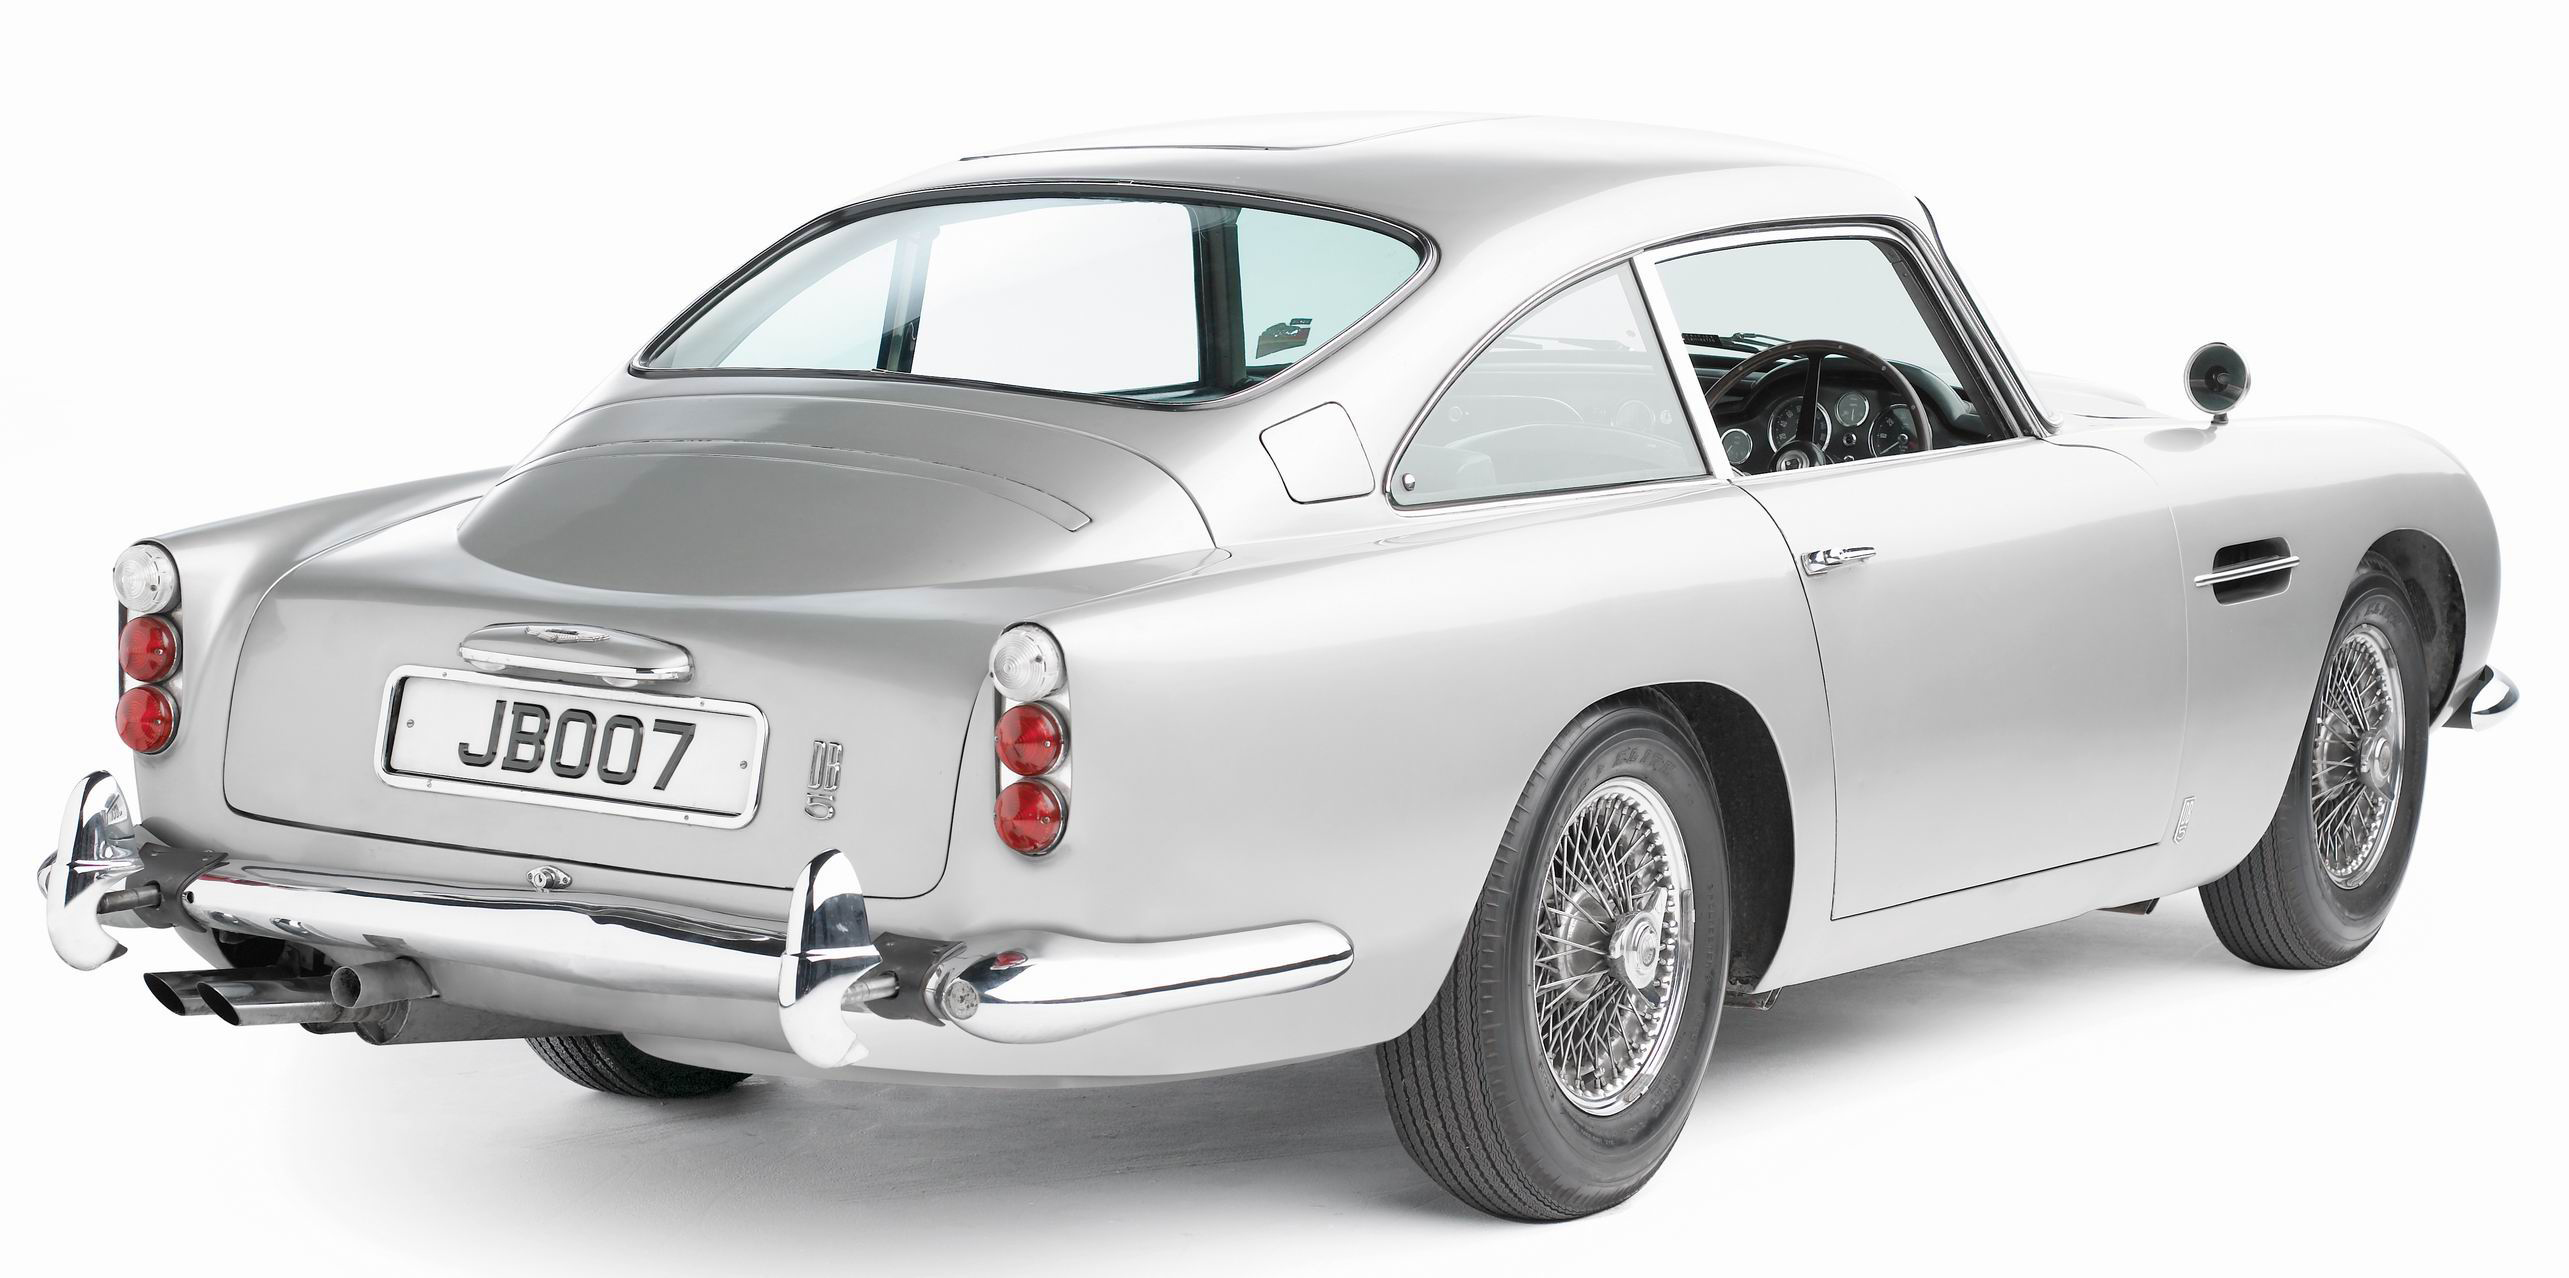 classic cars aston martin db5. Black Bedroom Furniture Sets. Home Design Ideas